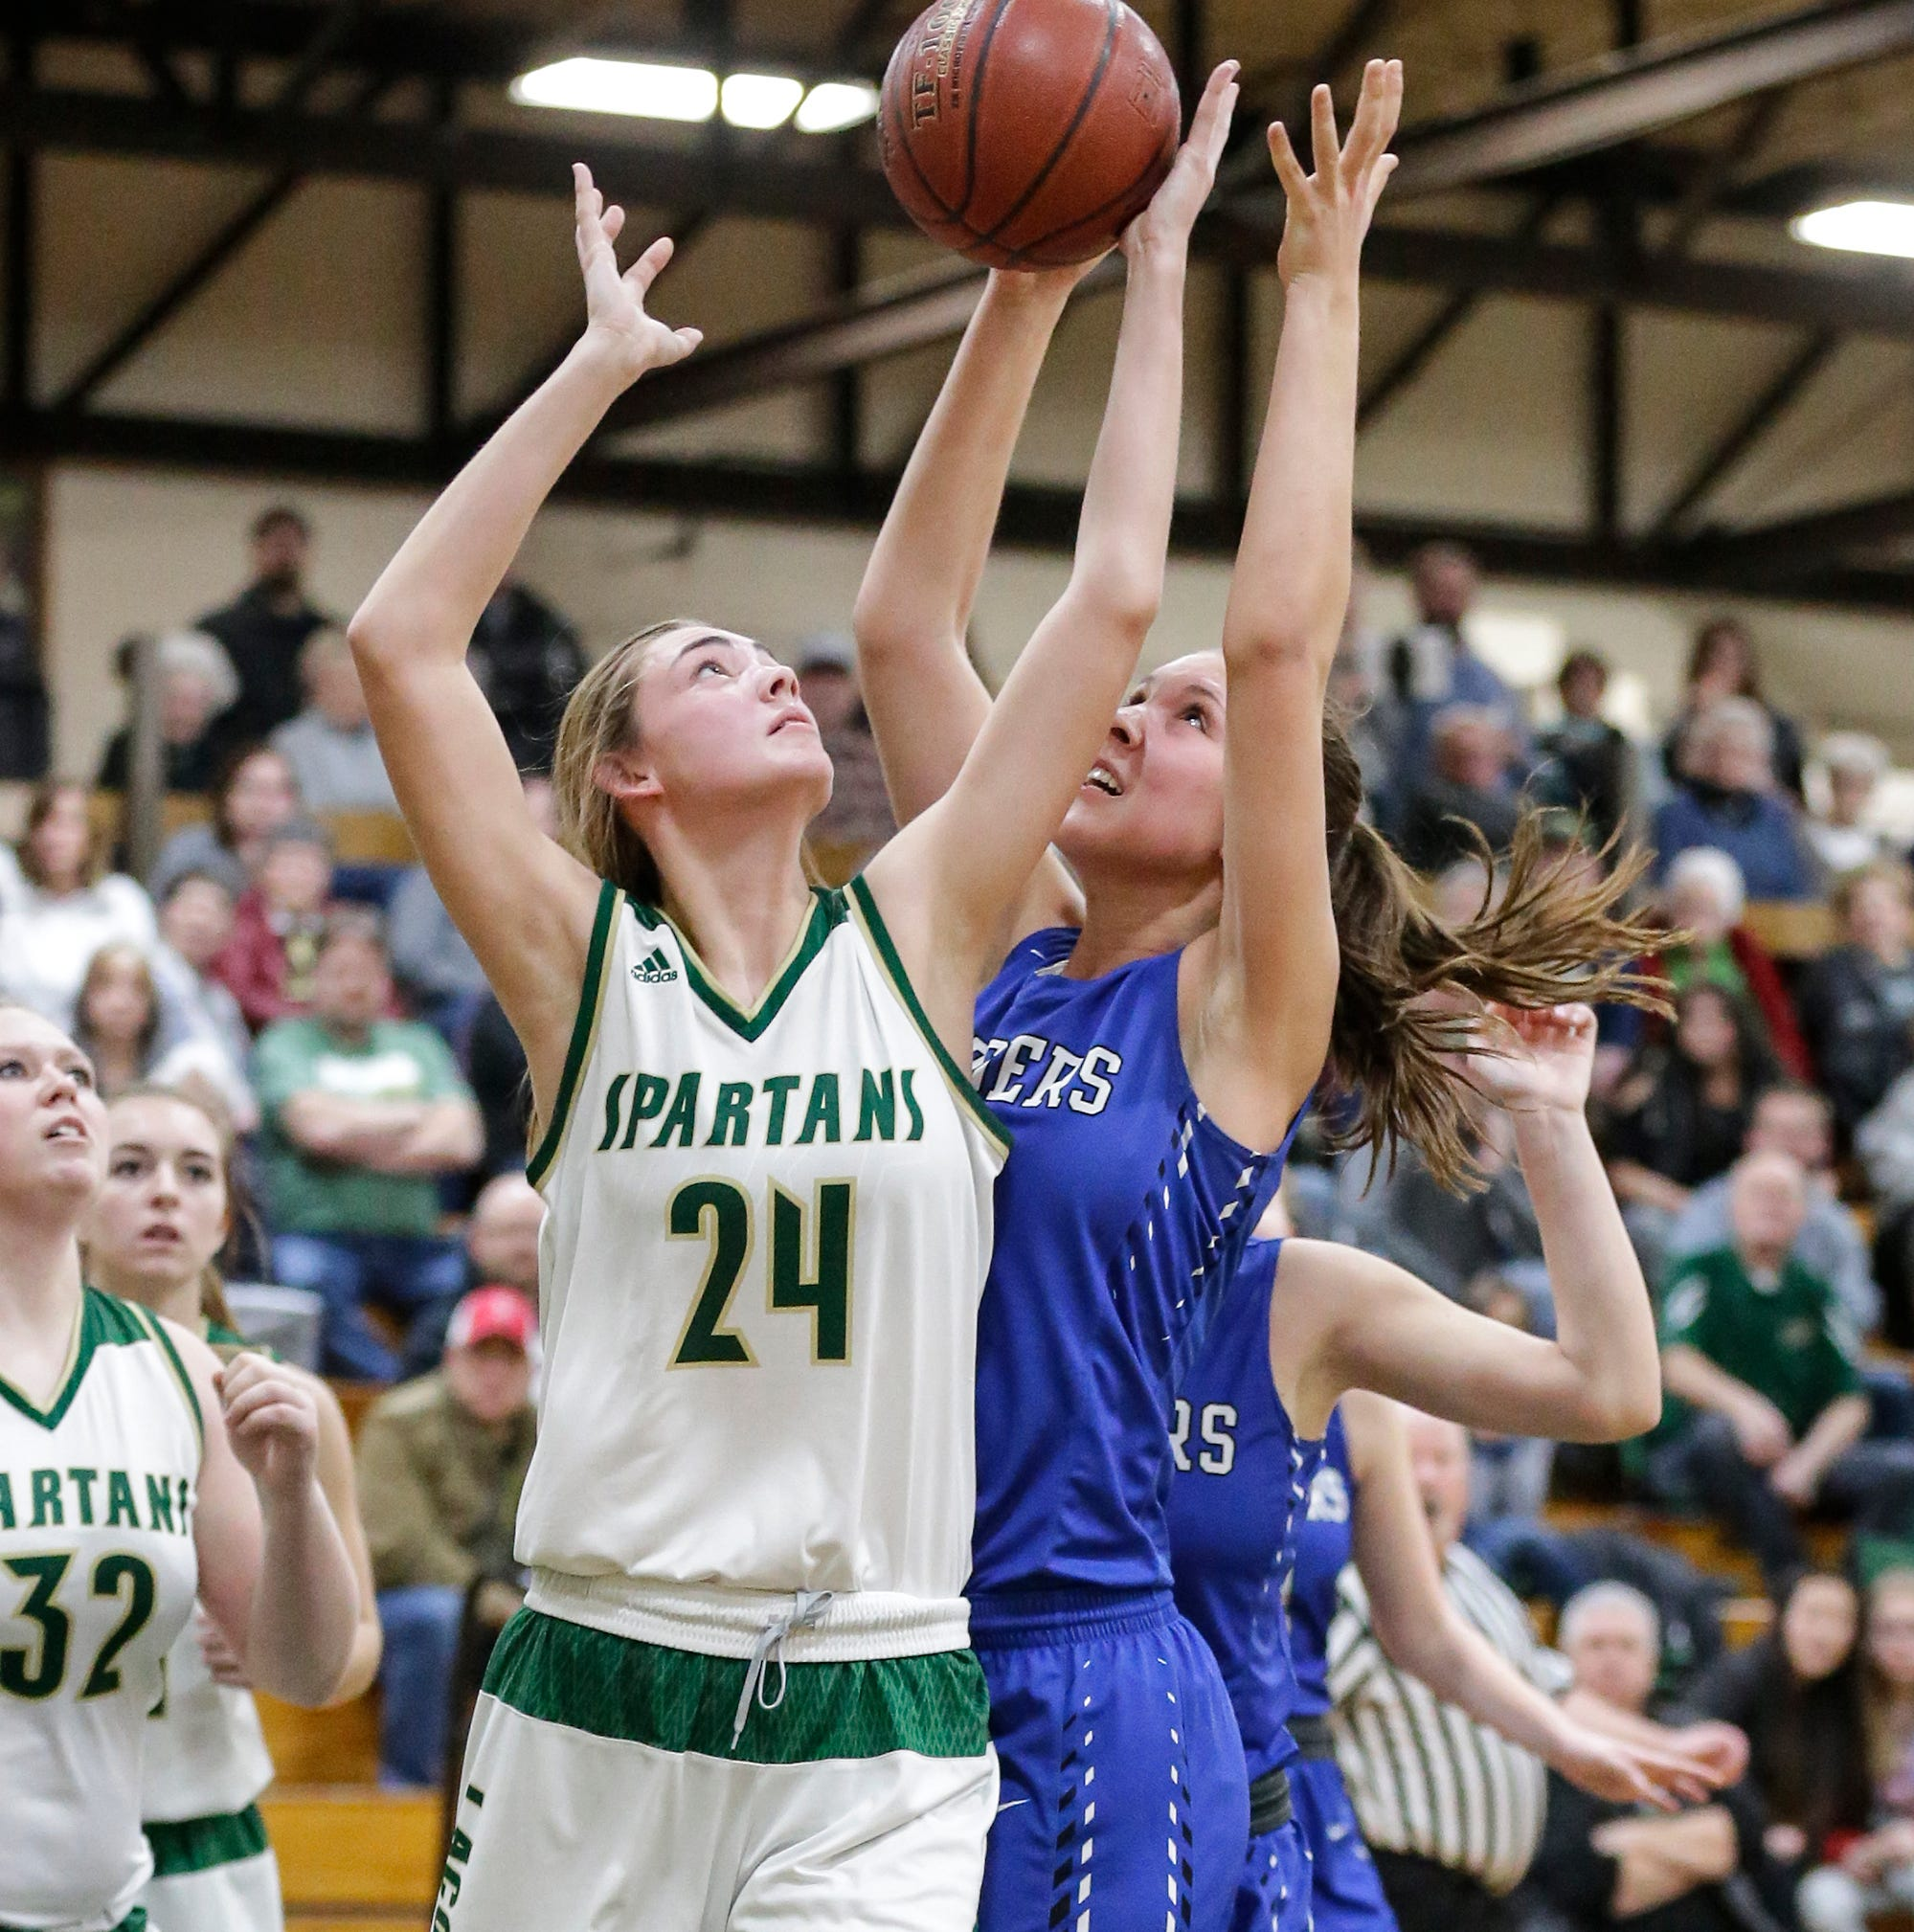 High school basketball: Waupun boys, Laconia girls continue conference dominance